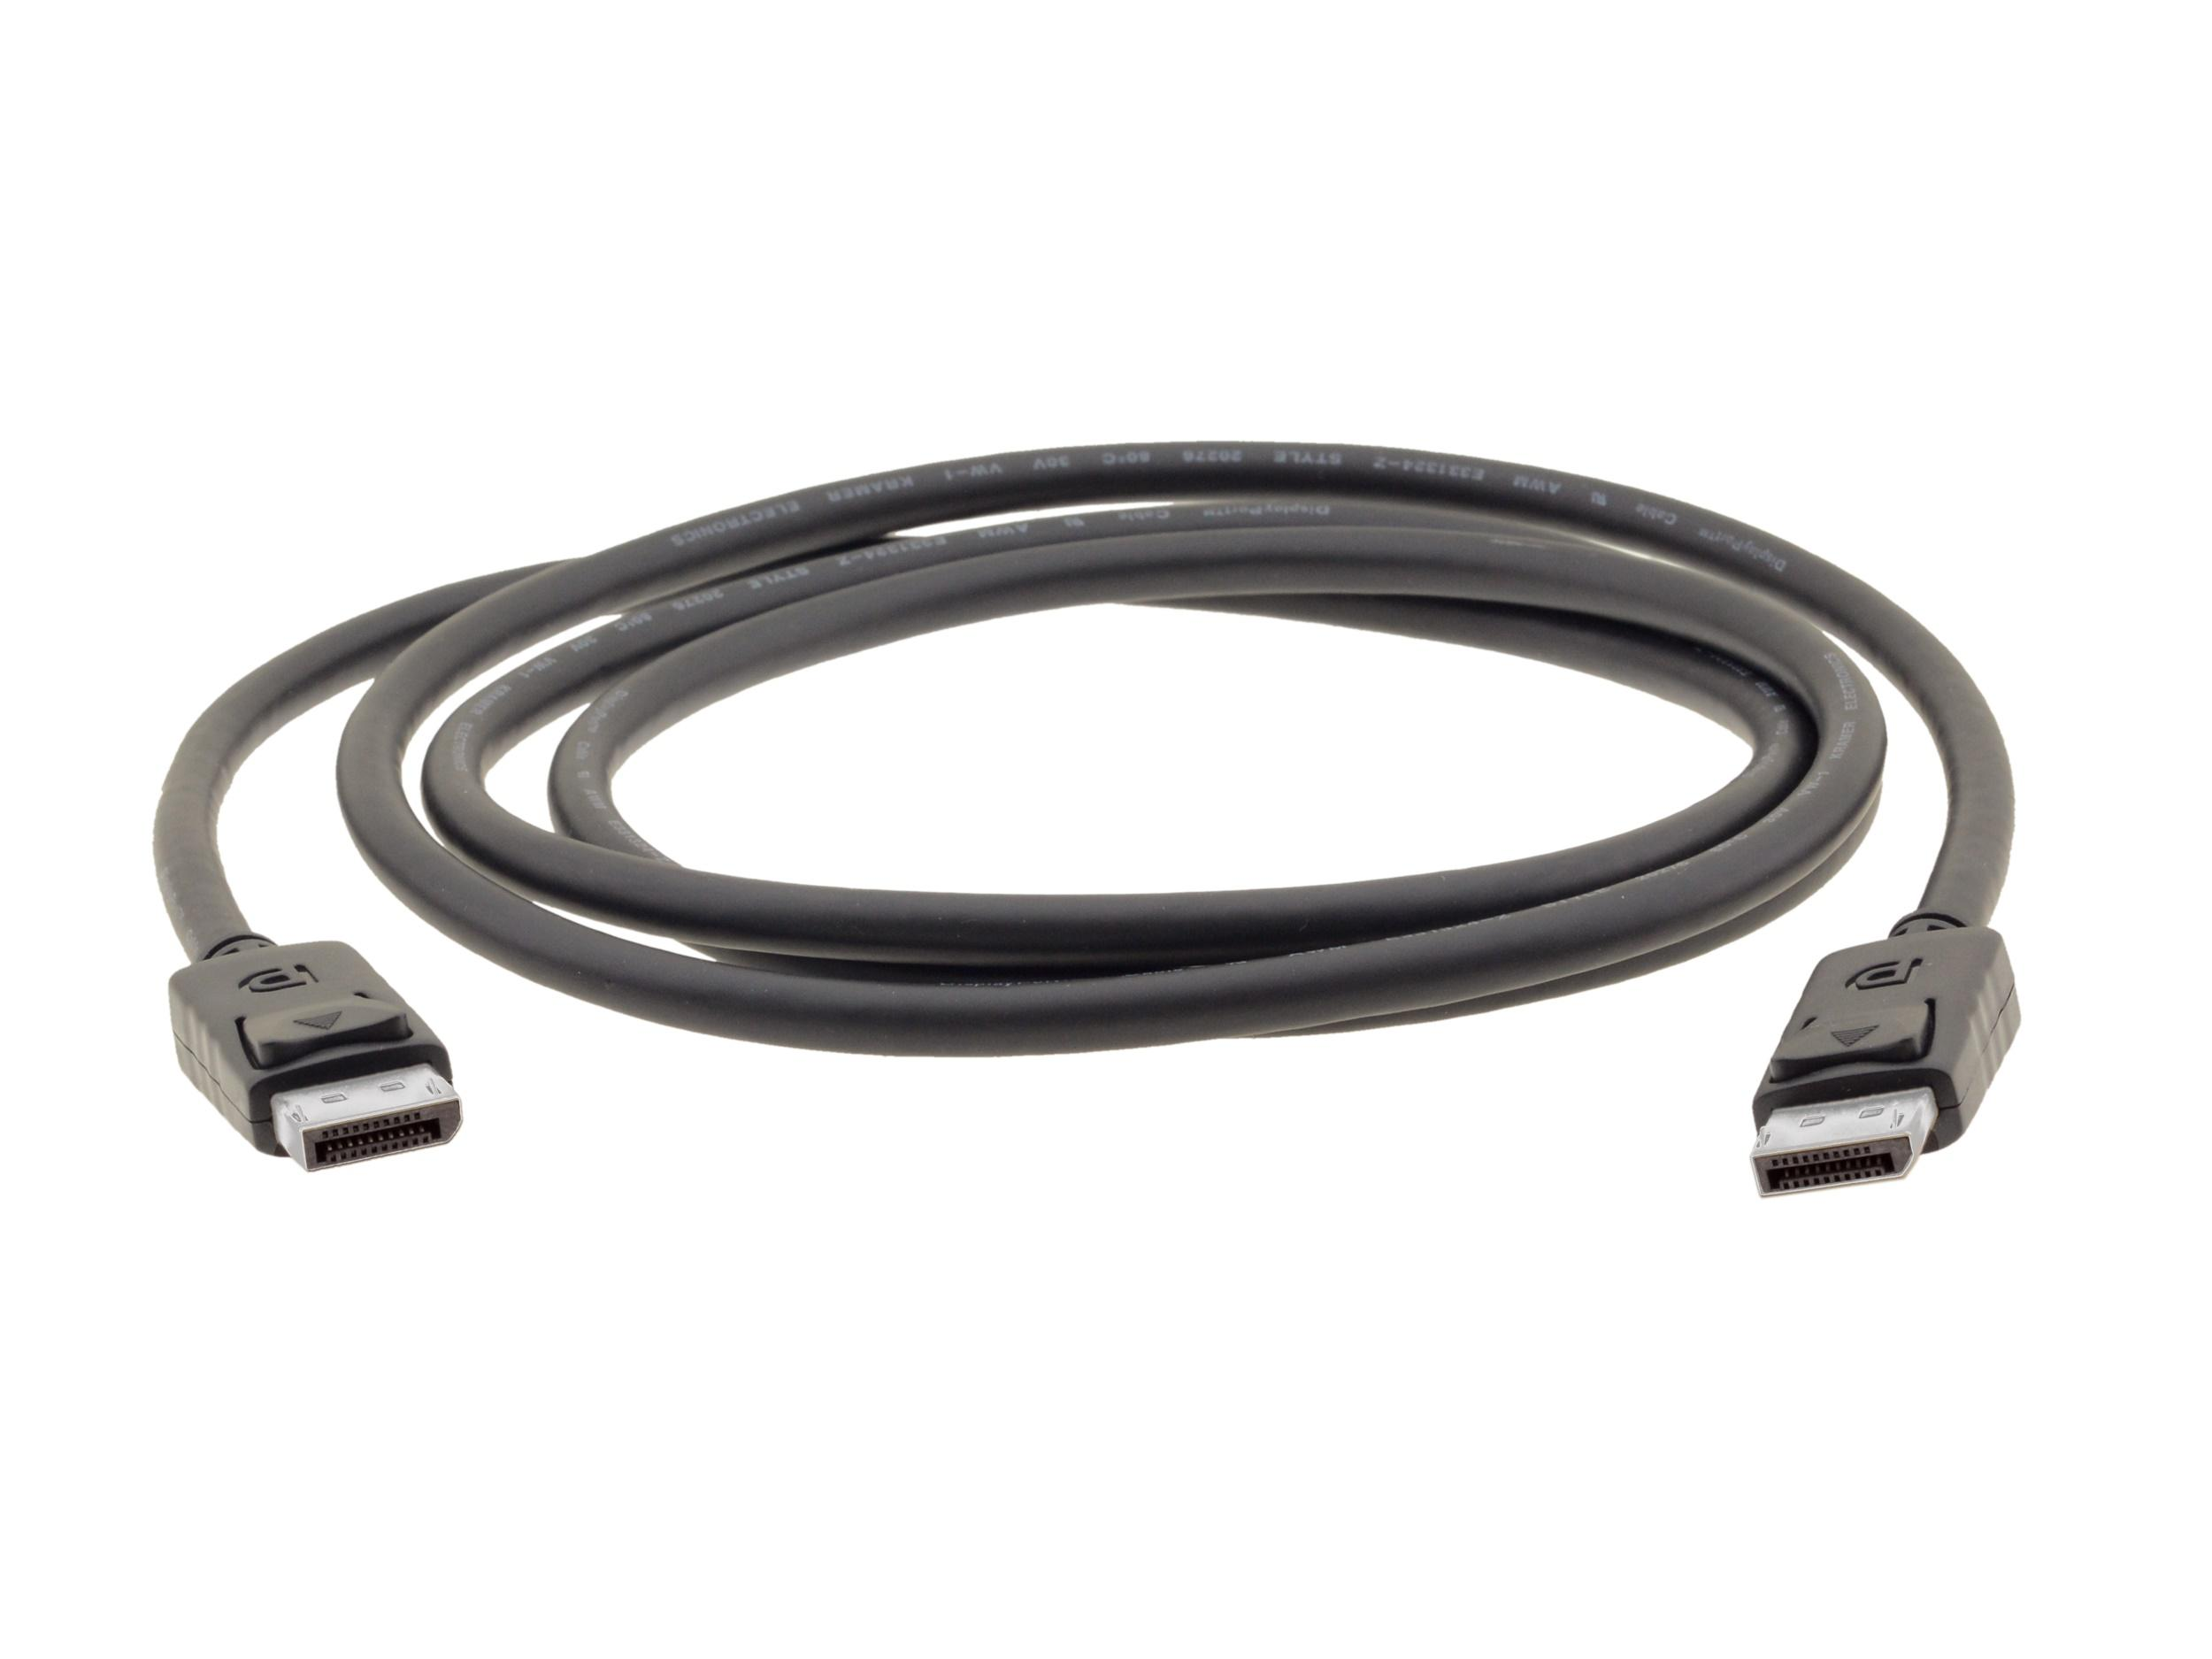 C-DP-50 50ft/15.2m DisplayPort (M) to DisplayPort (M) Cable by Kramer